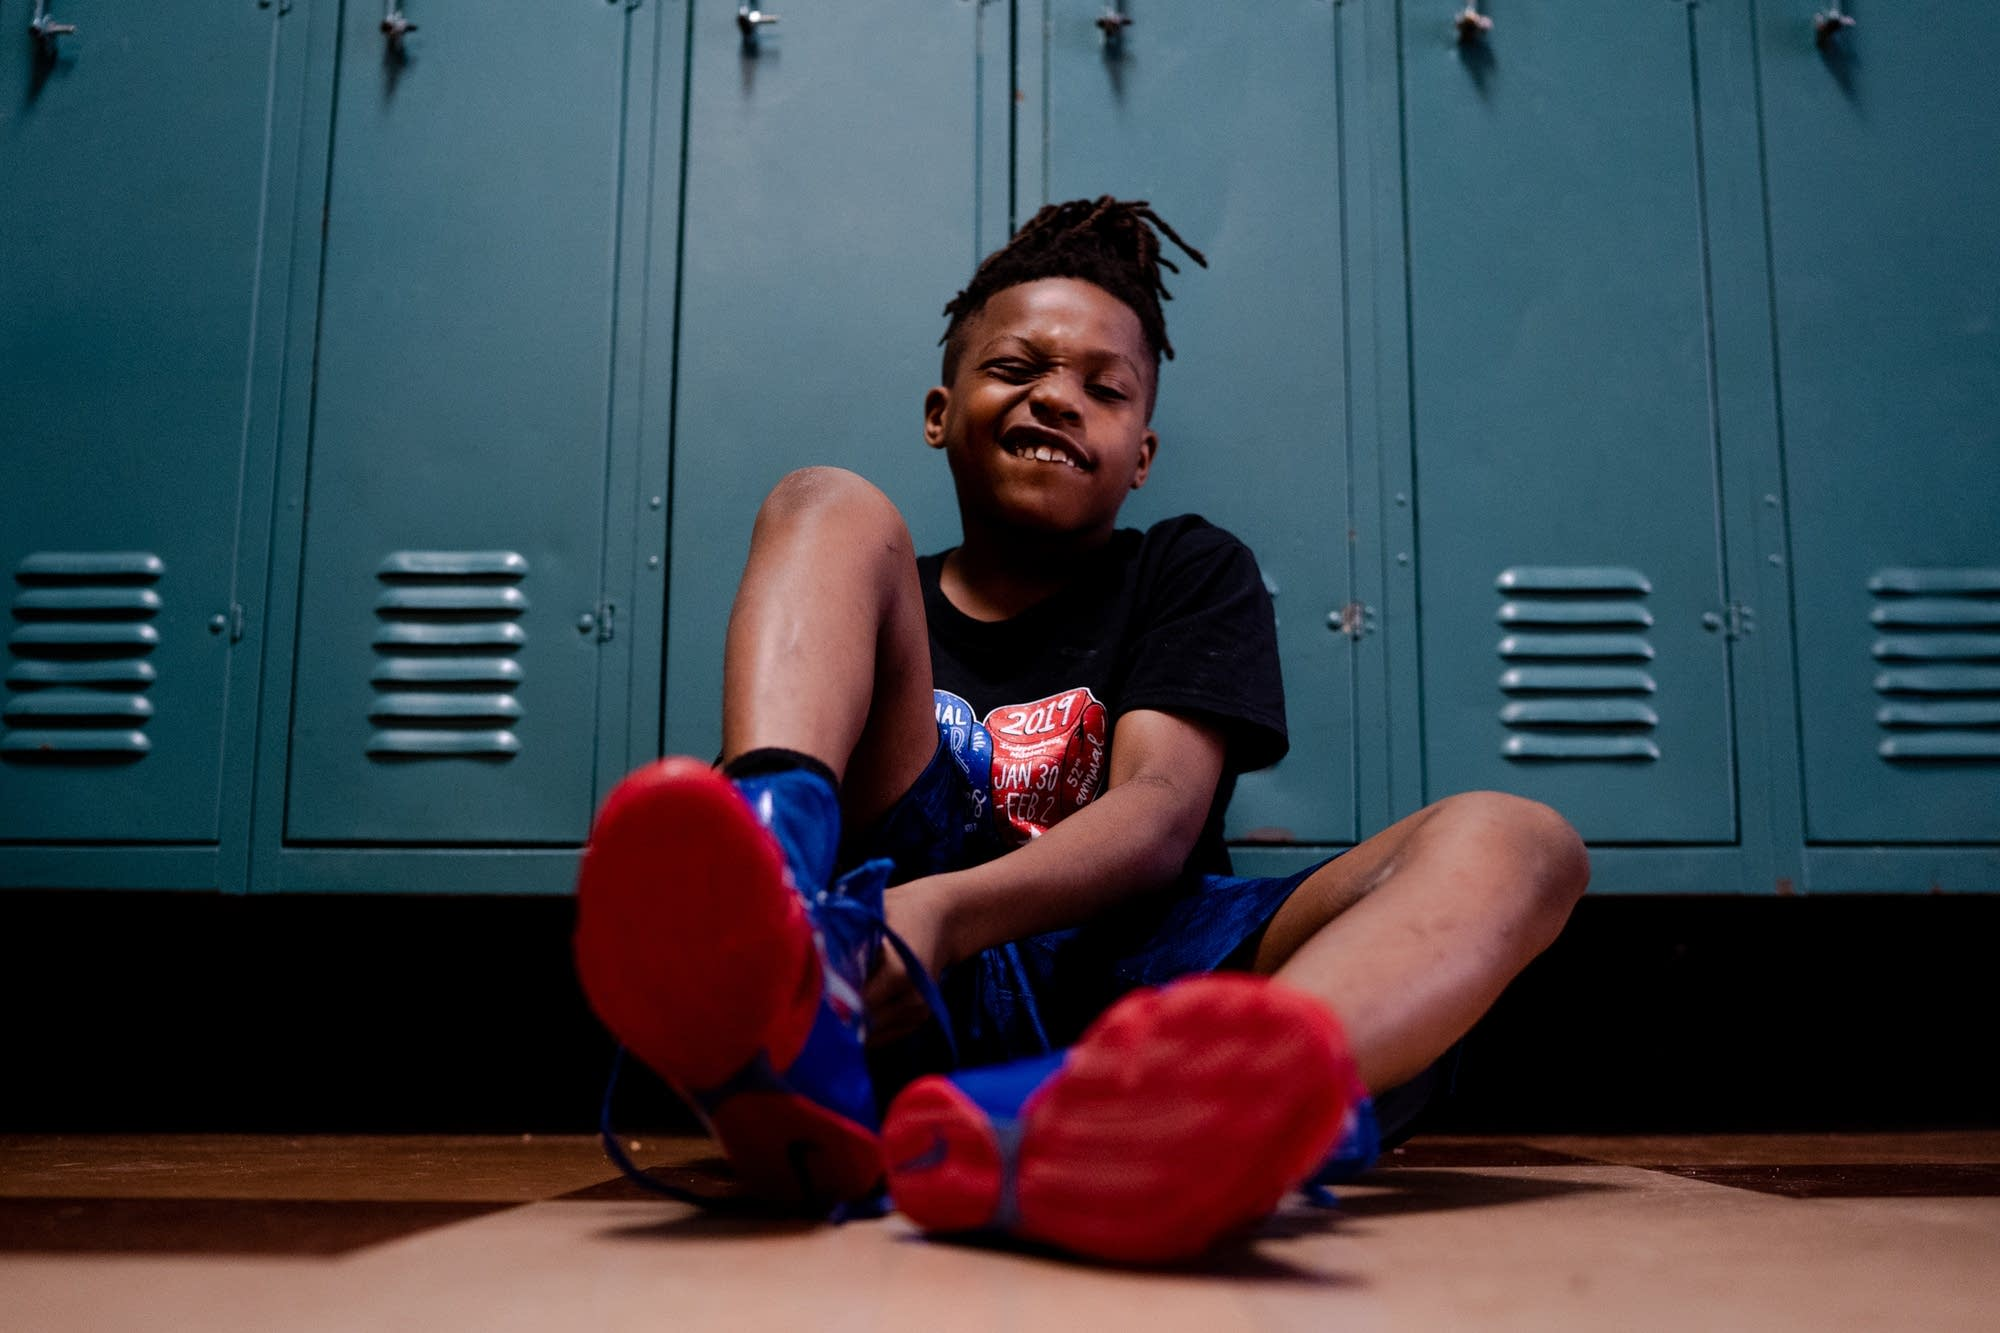 Eleven-year-old Morgan McDonald Jr. pulls on his boxing shoes.